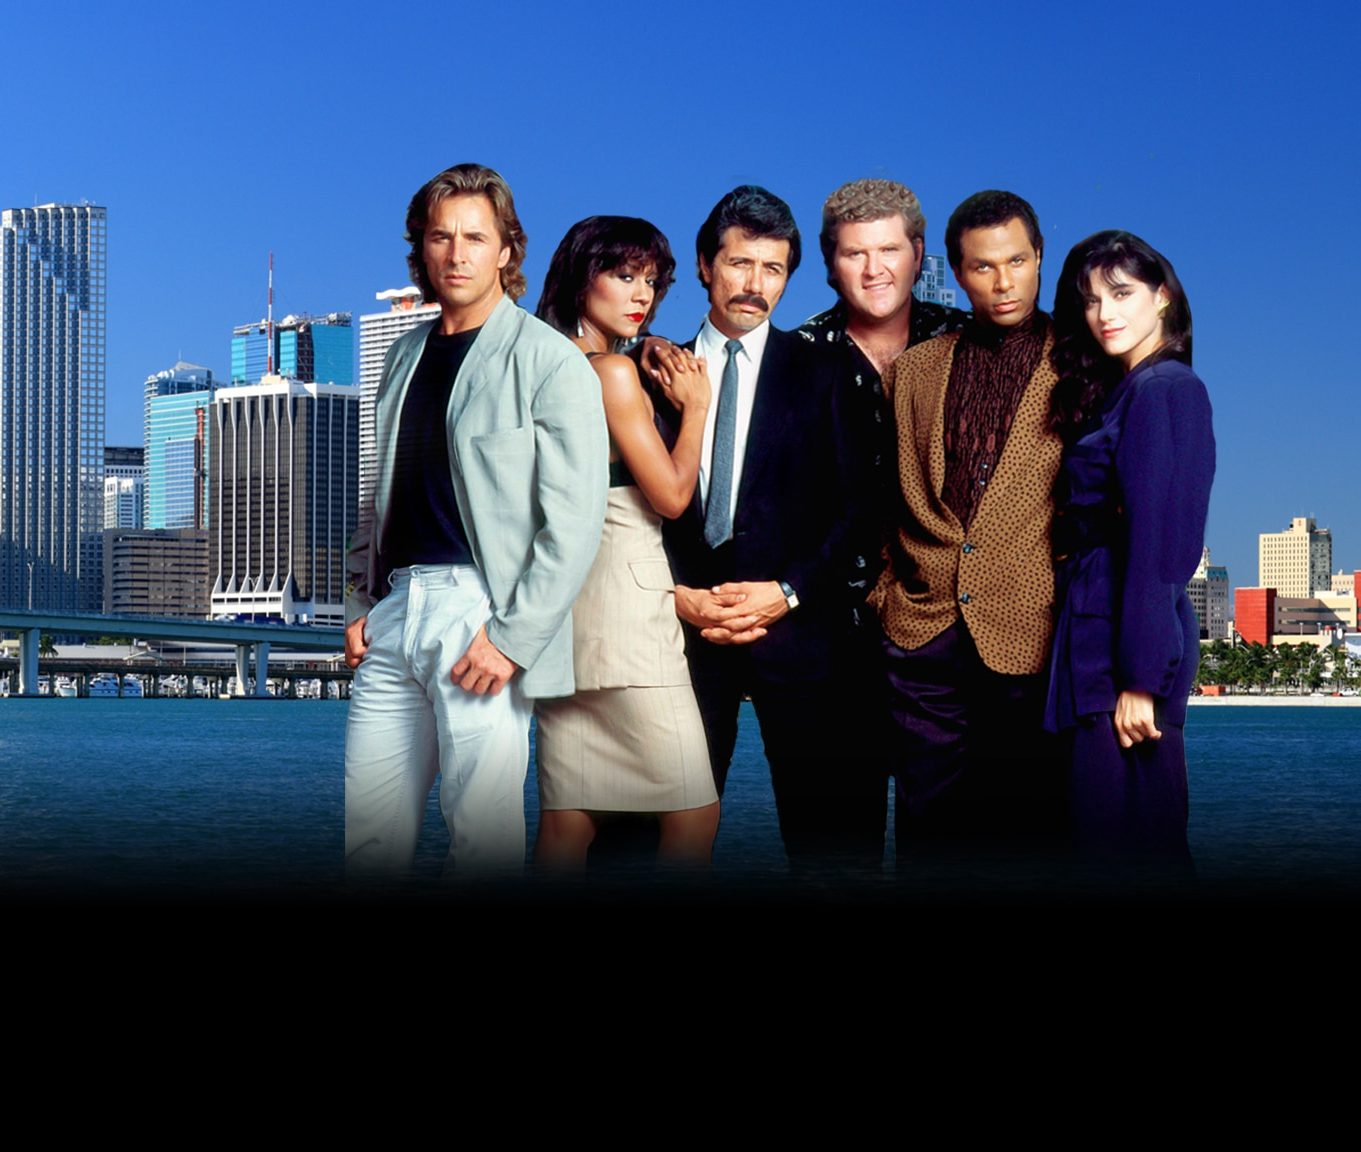 2016 0614 NBC App iOS iPhone MiamiVice 2048x1152 JW e1608555366421 20 Things You Probably Didn't Know About Miami Vice